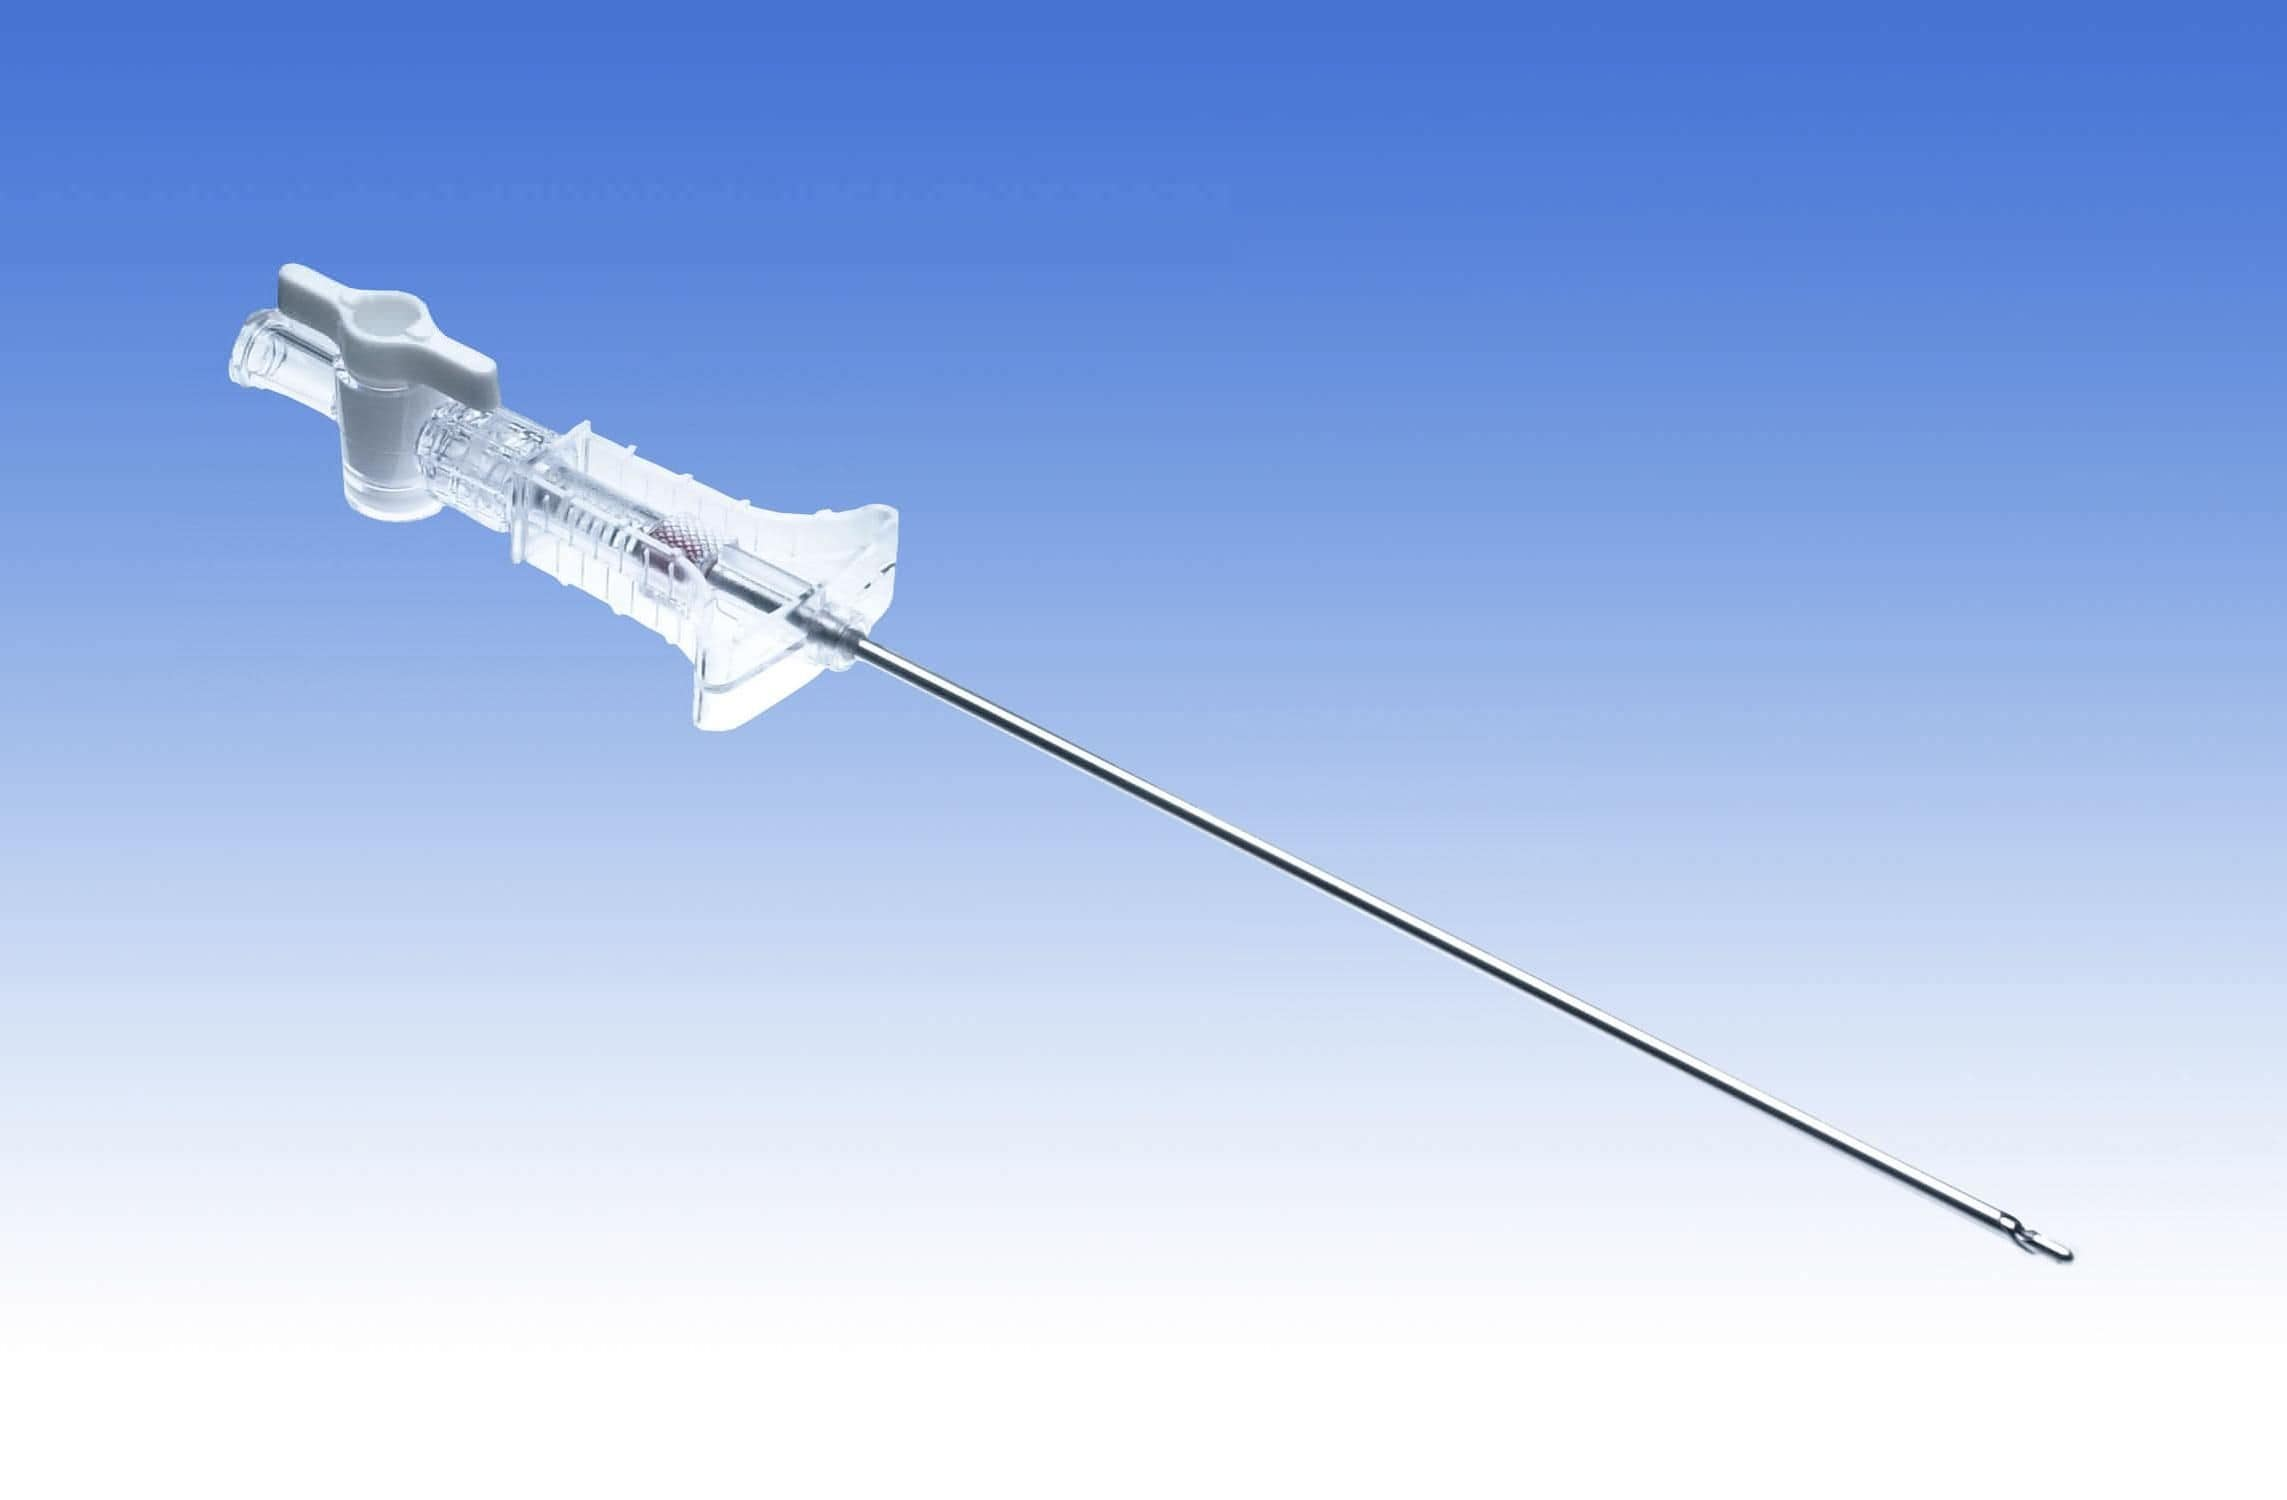 needle dream meaning, dream about needle, needle dream interpretation, seeing in a dream needle